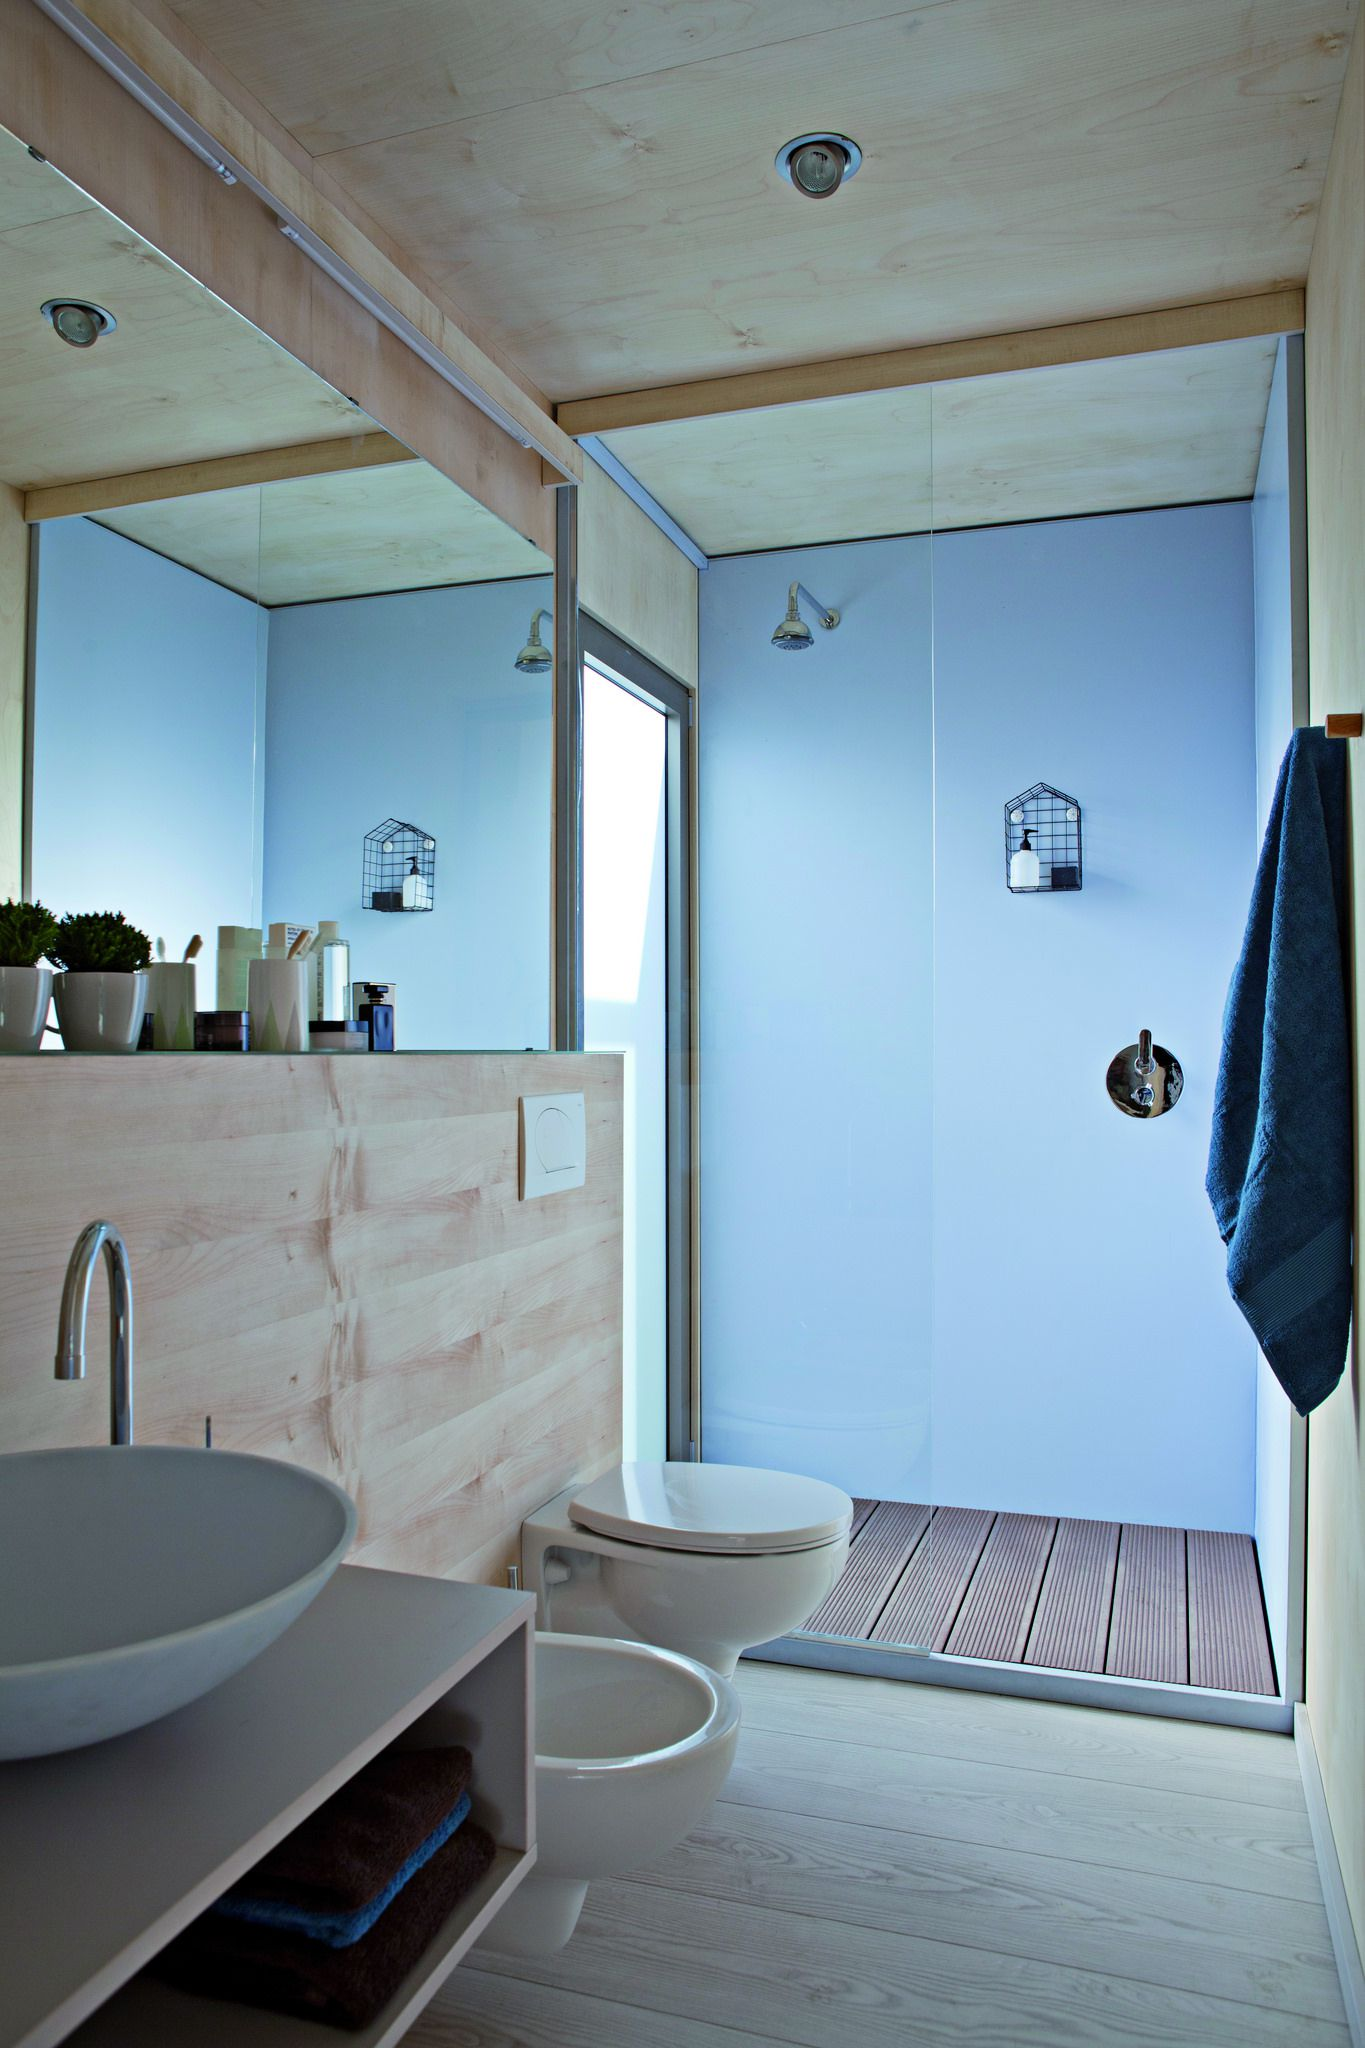 BIG BERRY bathroom space 2